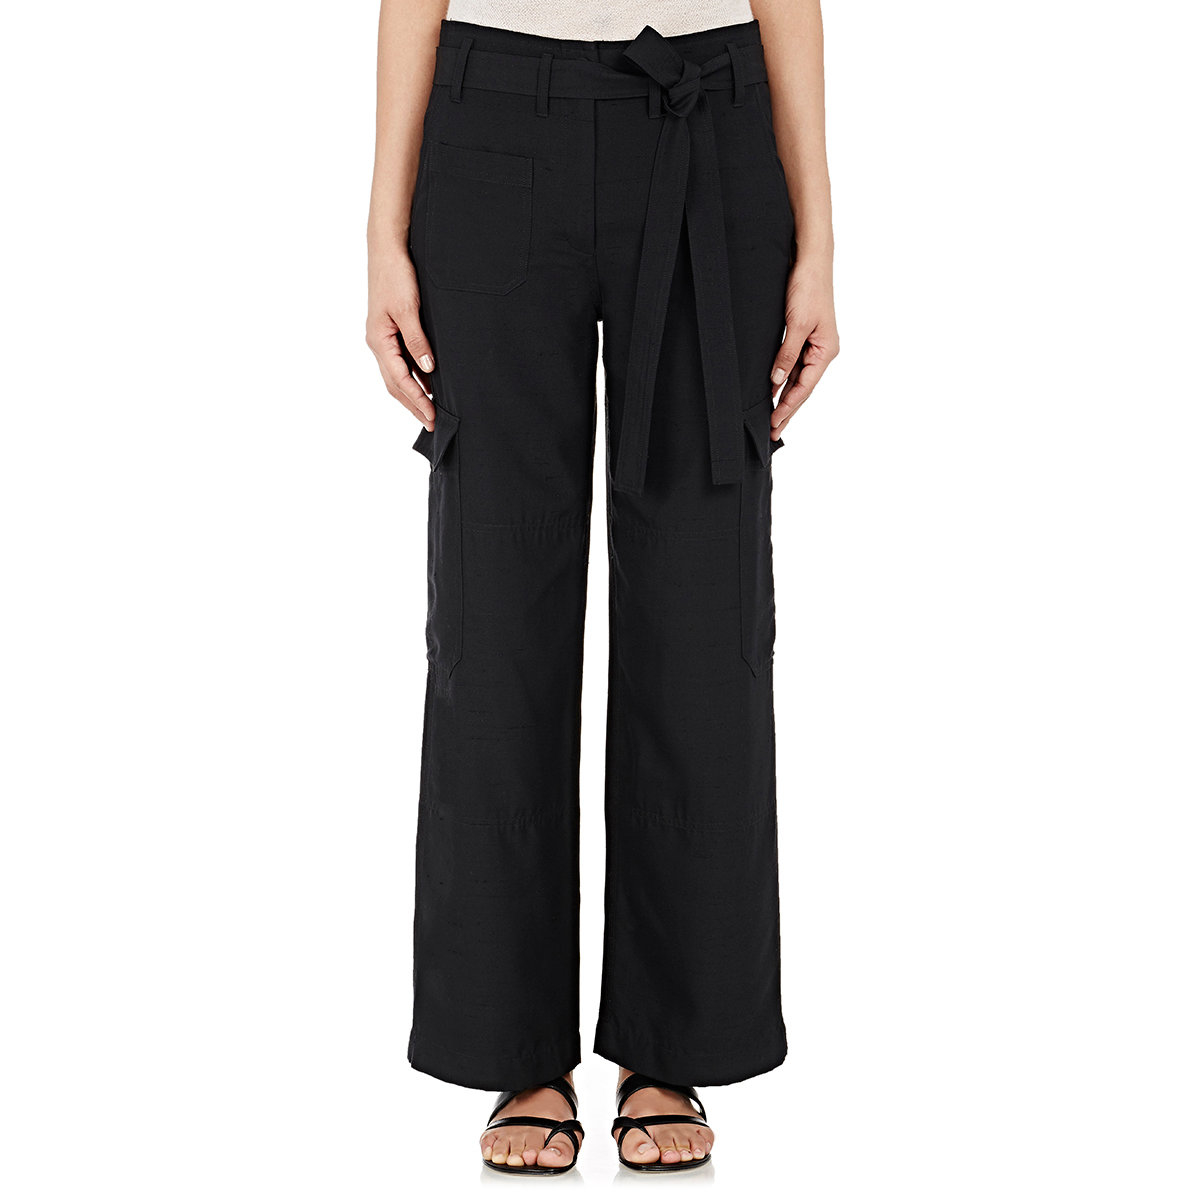 Wide Leg Cargo Pants - Pant Row